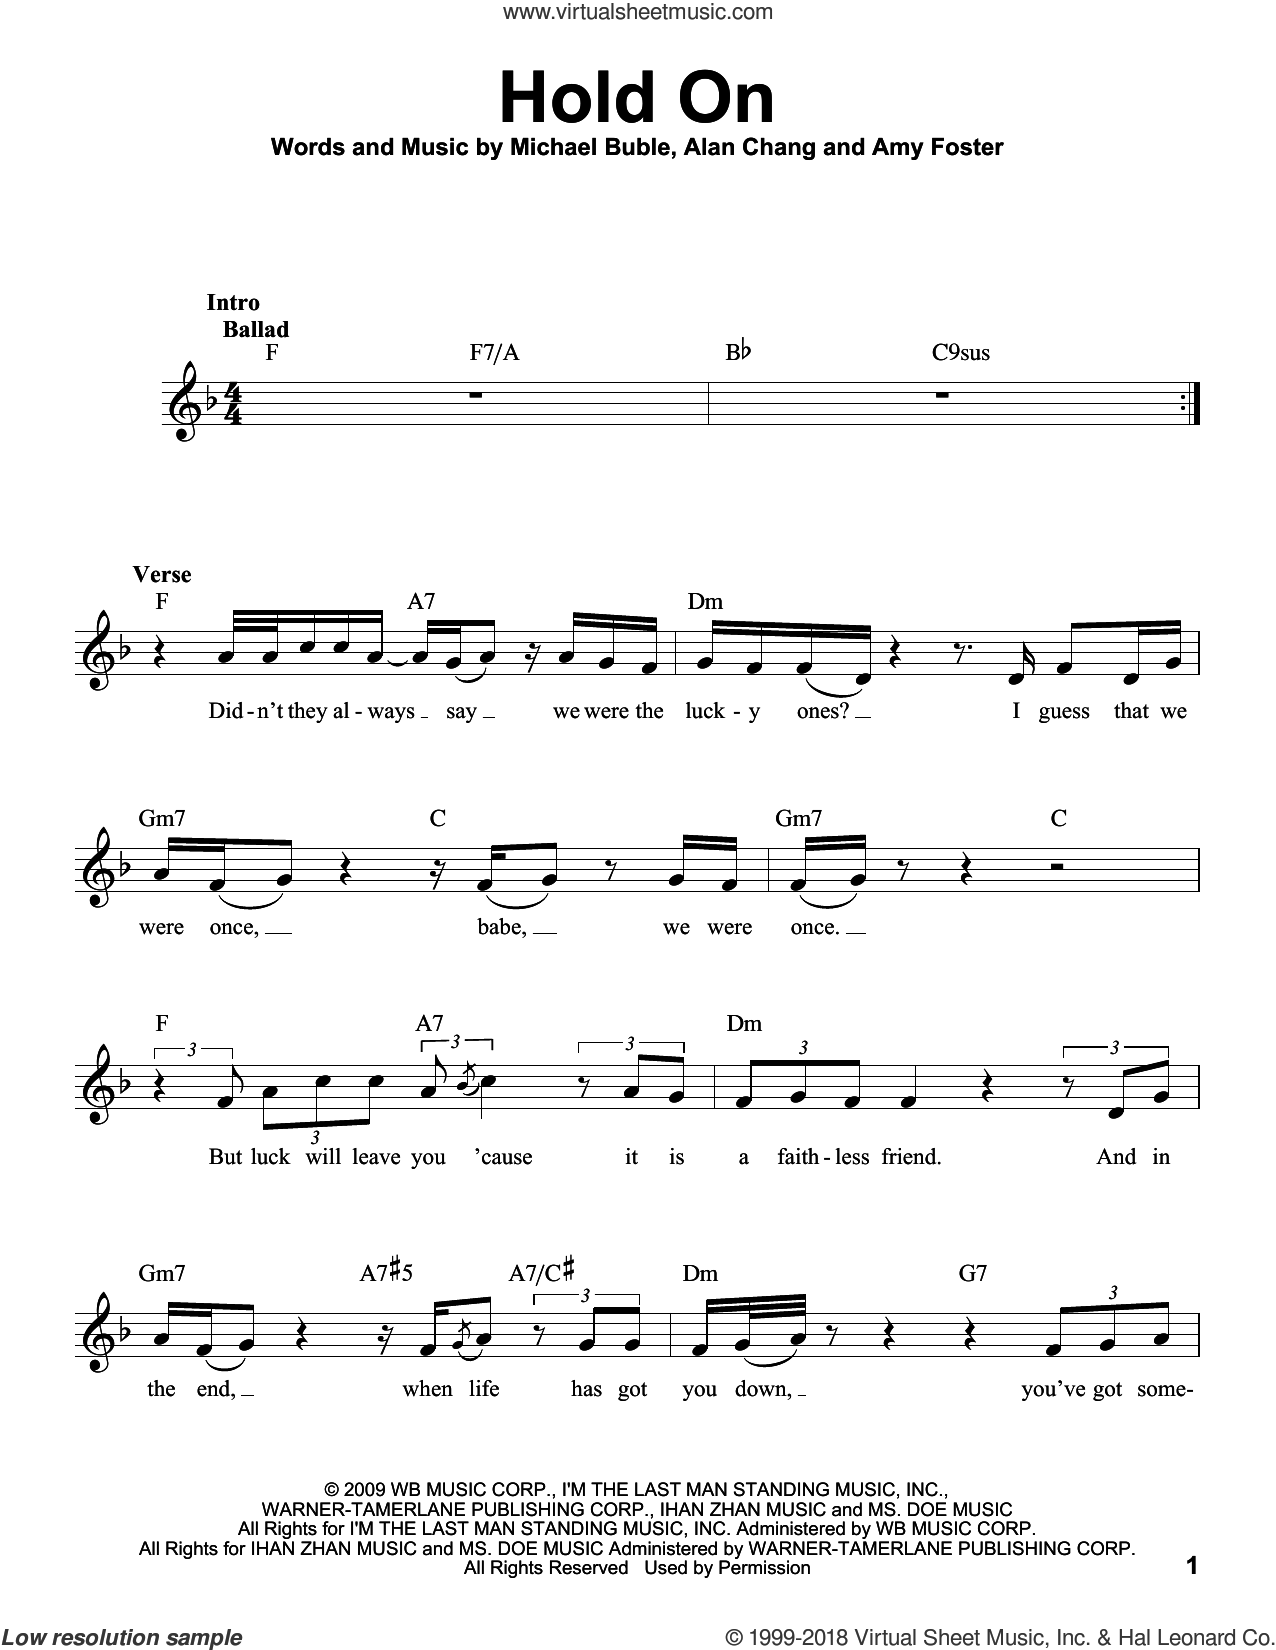 Hold On sheet music for voice solo by Michael Buble, Alan Chang and Amy Foster, intermediate skill level